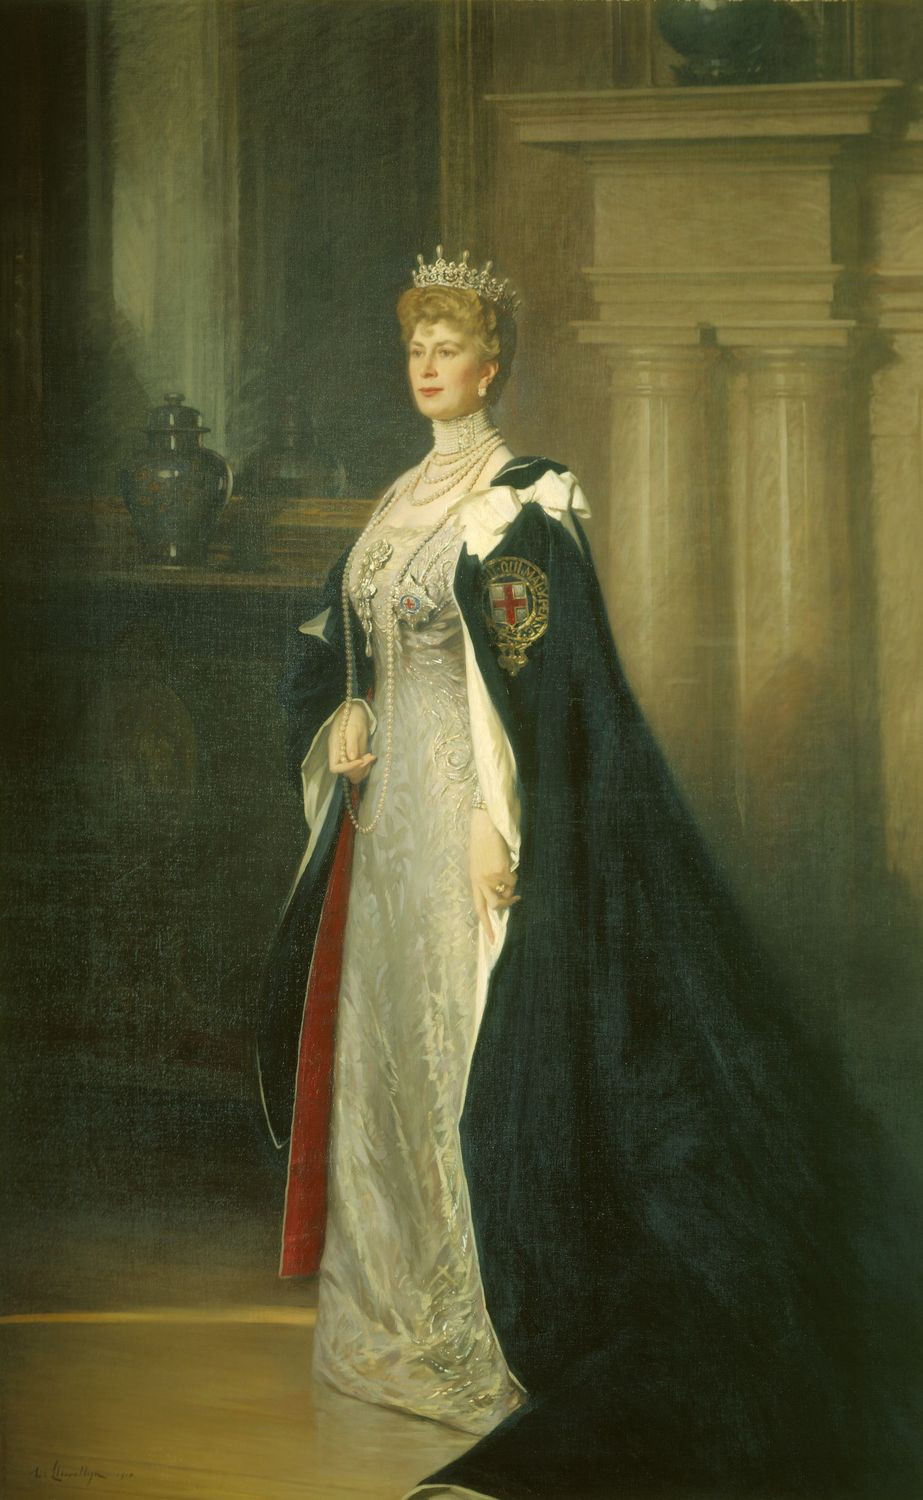 Queen Mary postrait painting